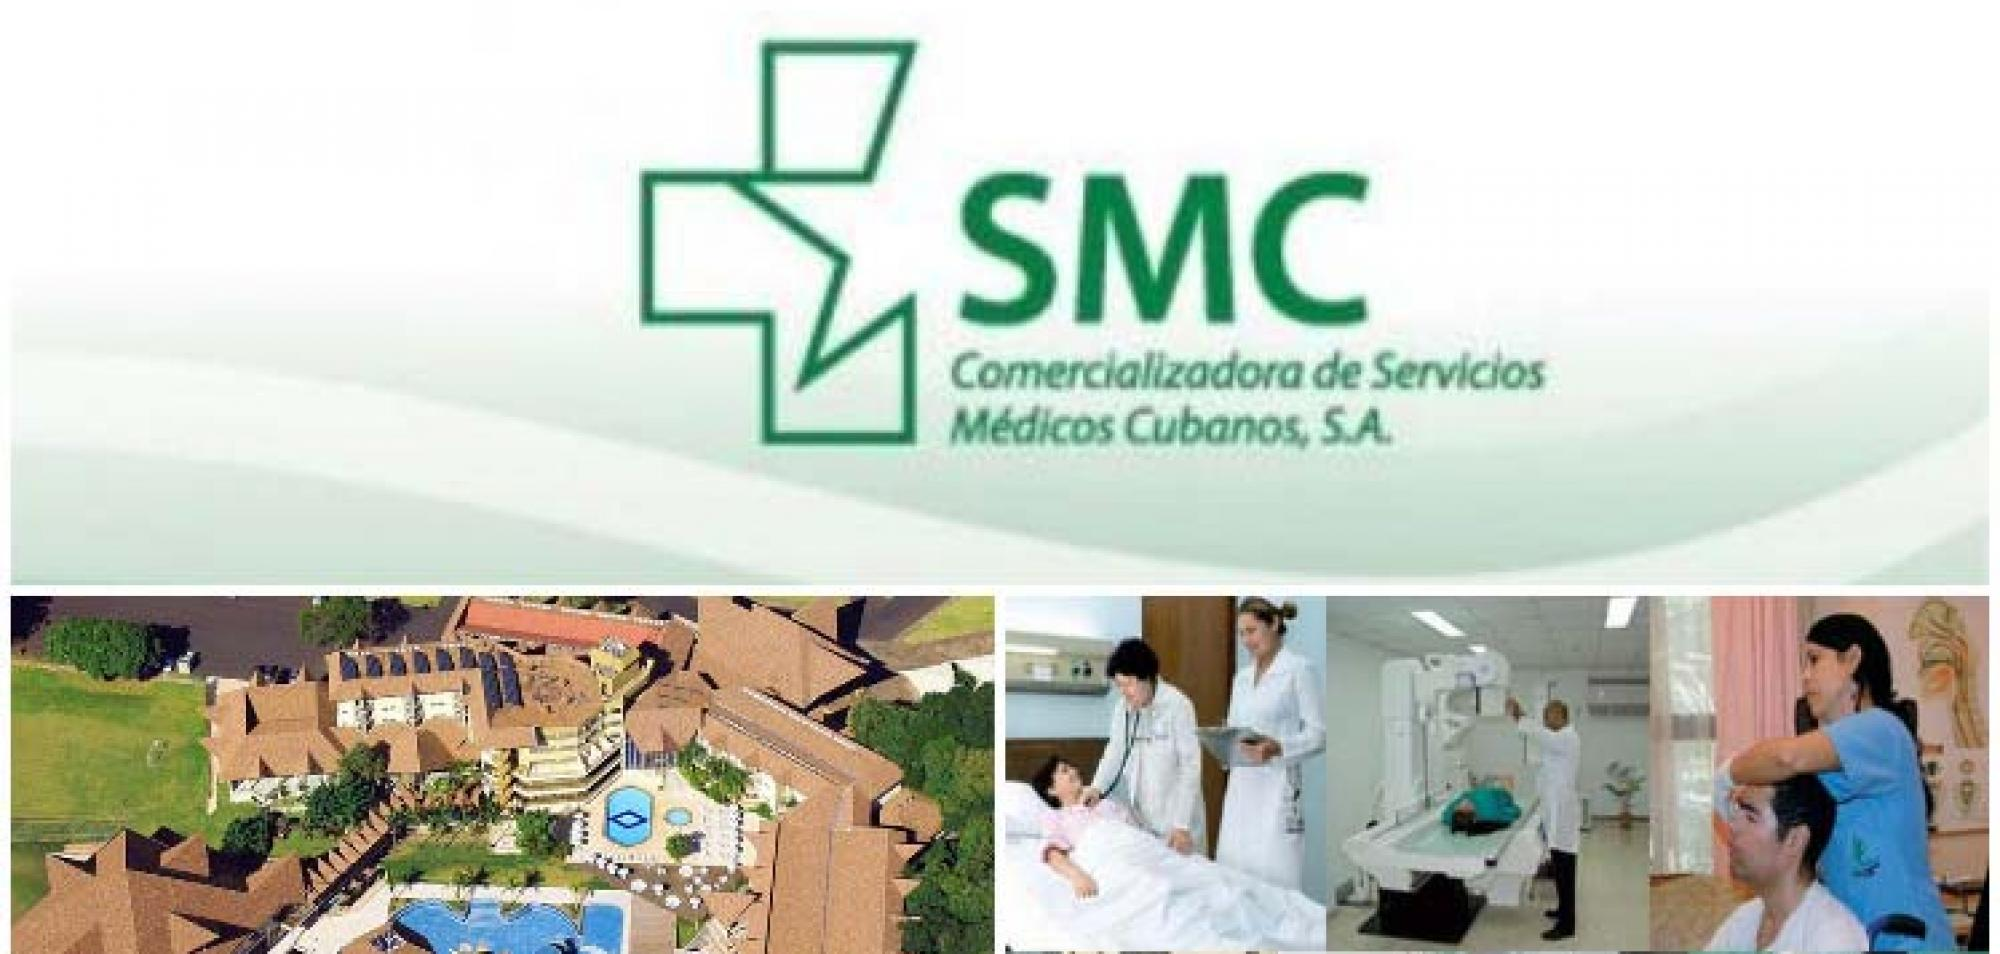 Cuban Medical Achivements at Brazilian Tourism Event